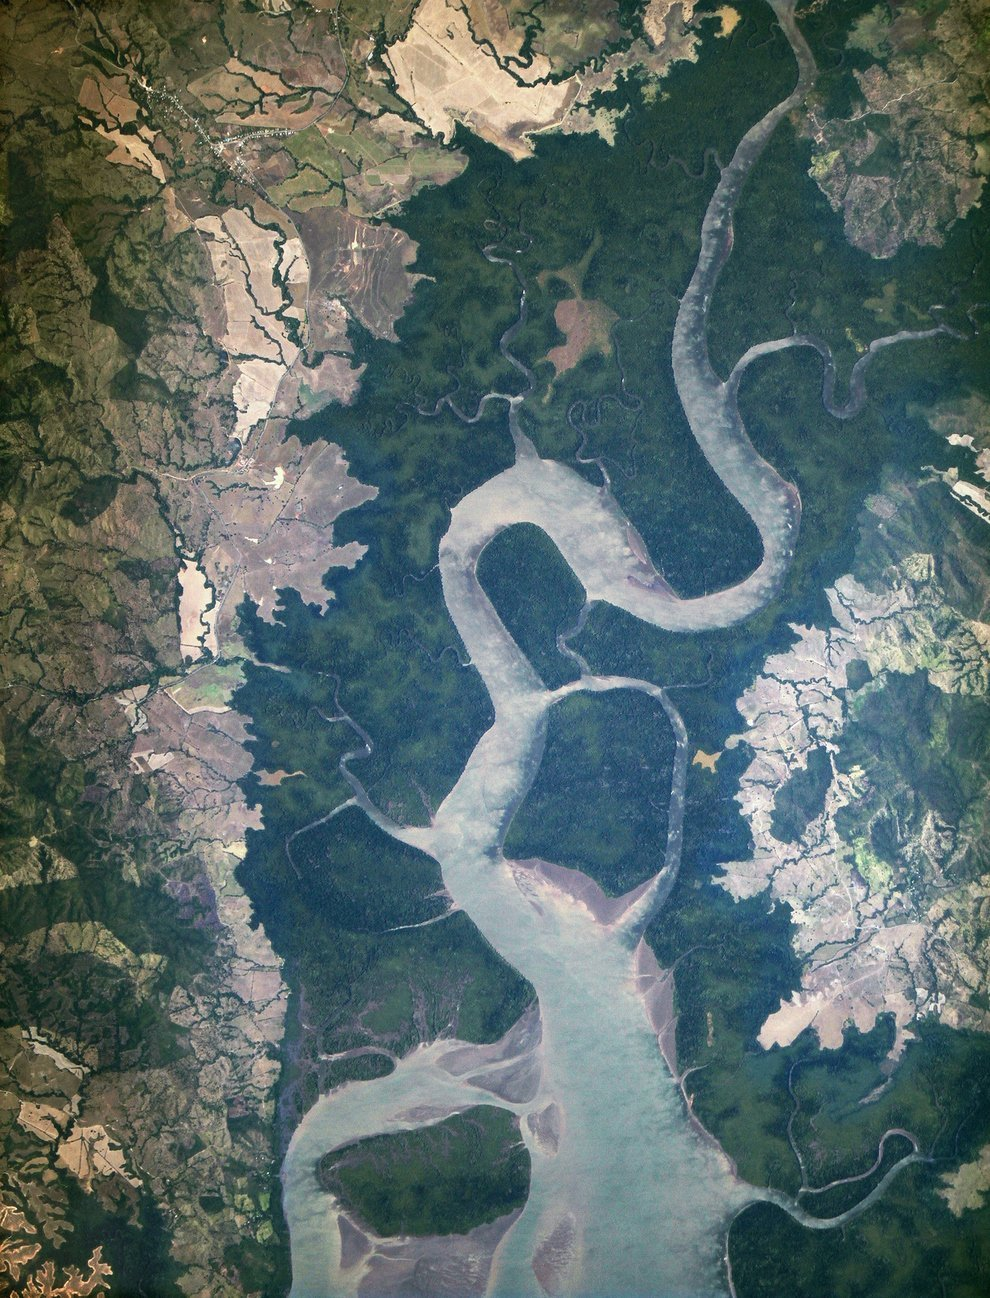 Rio San Pablo in Veraguas, Panama, as it empties into the Gulf of Montijo.